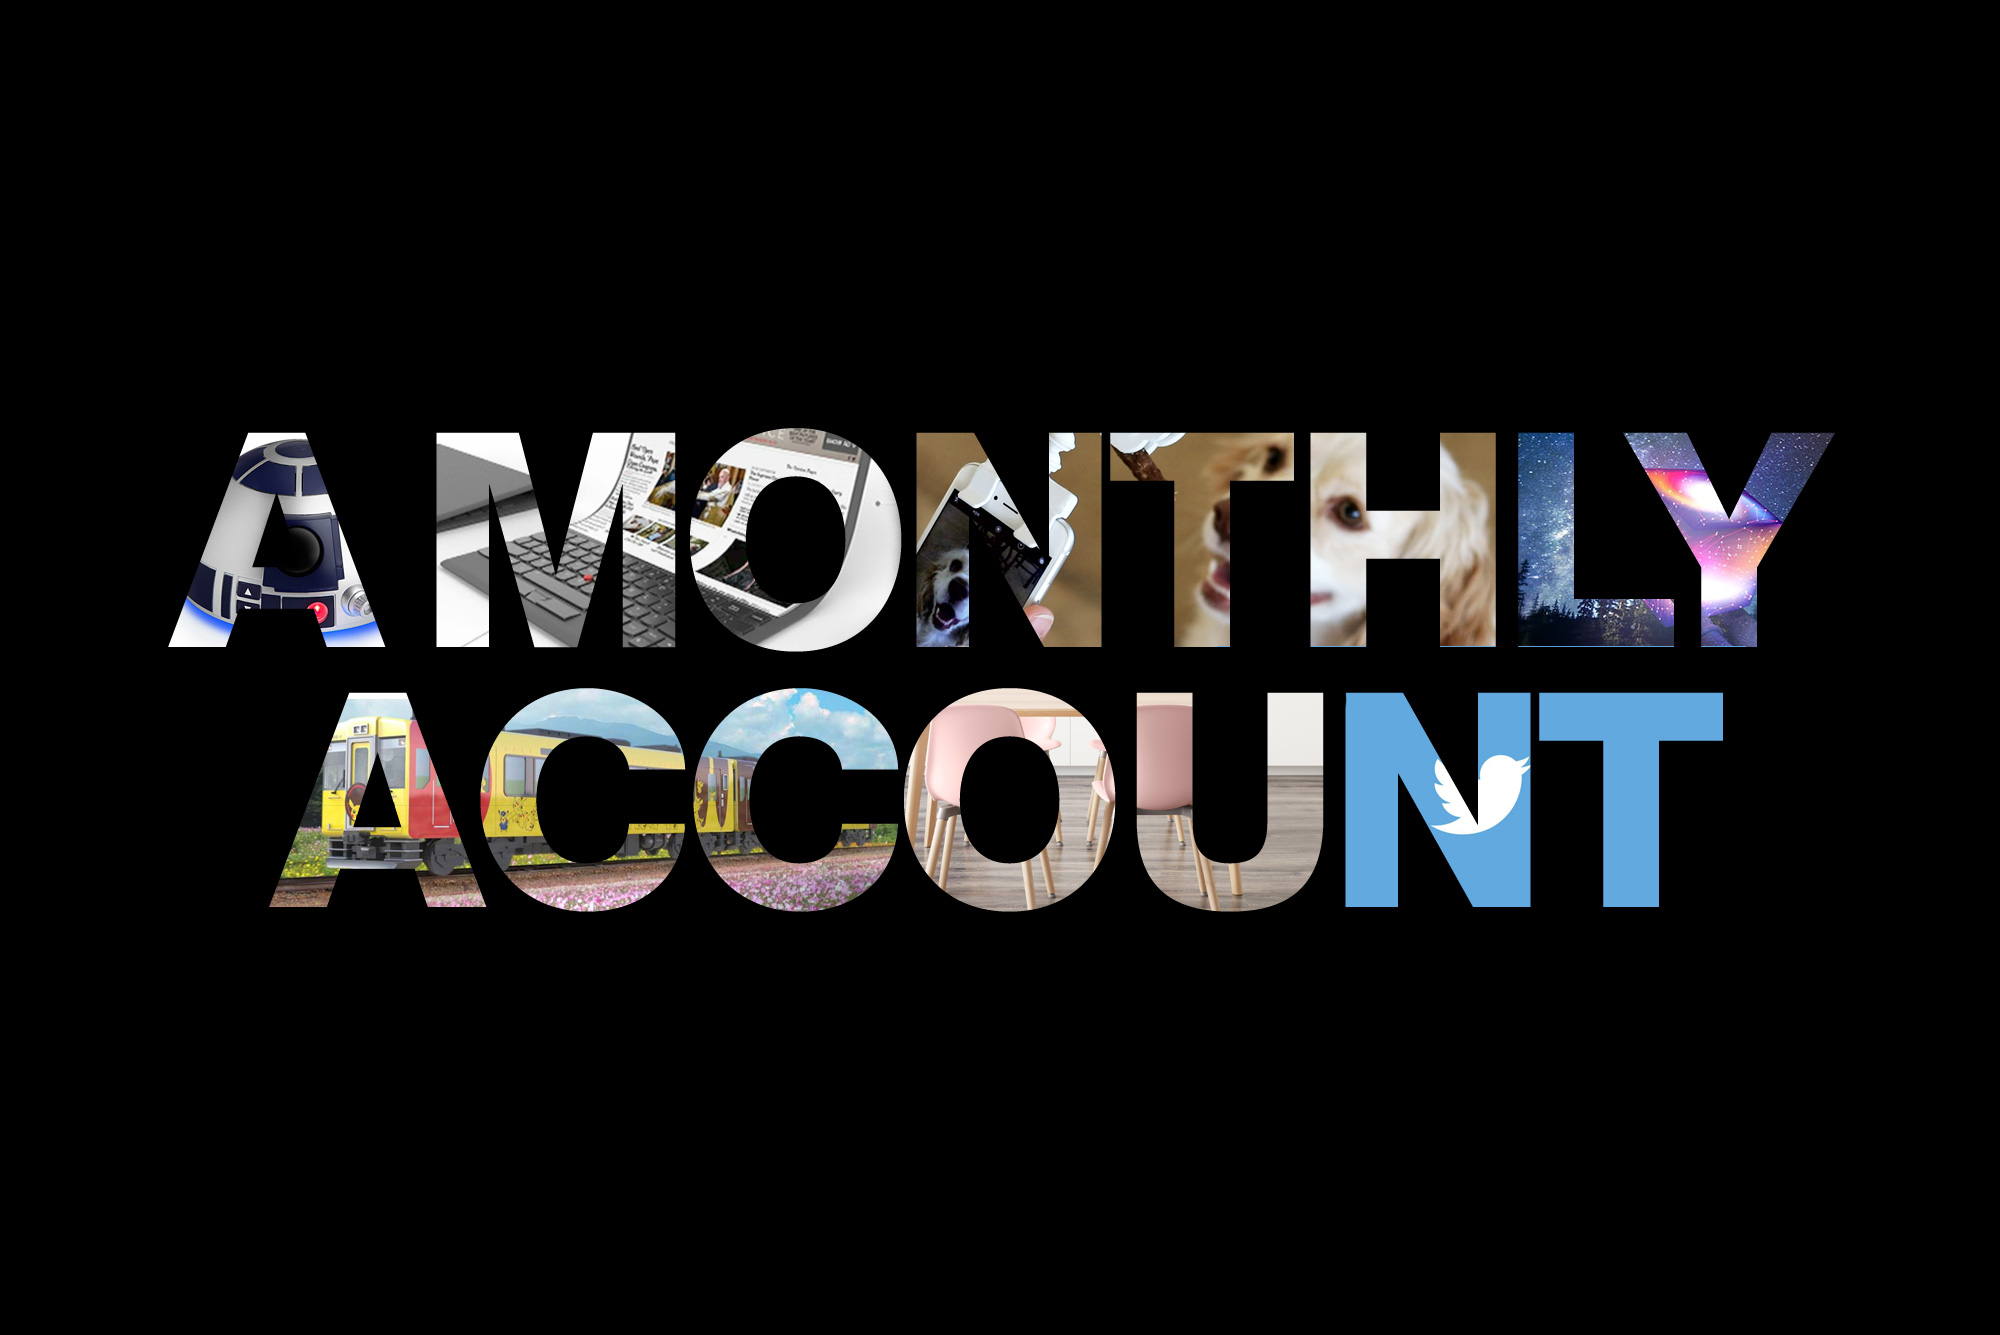 A Monthly Account main image made up of smaller images